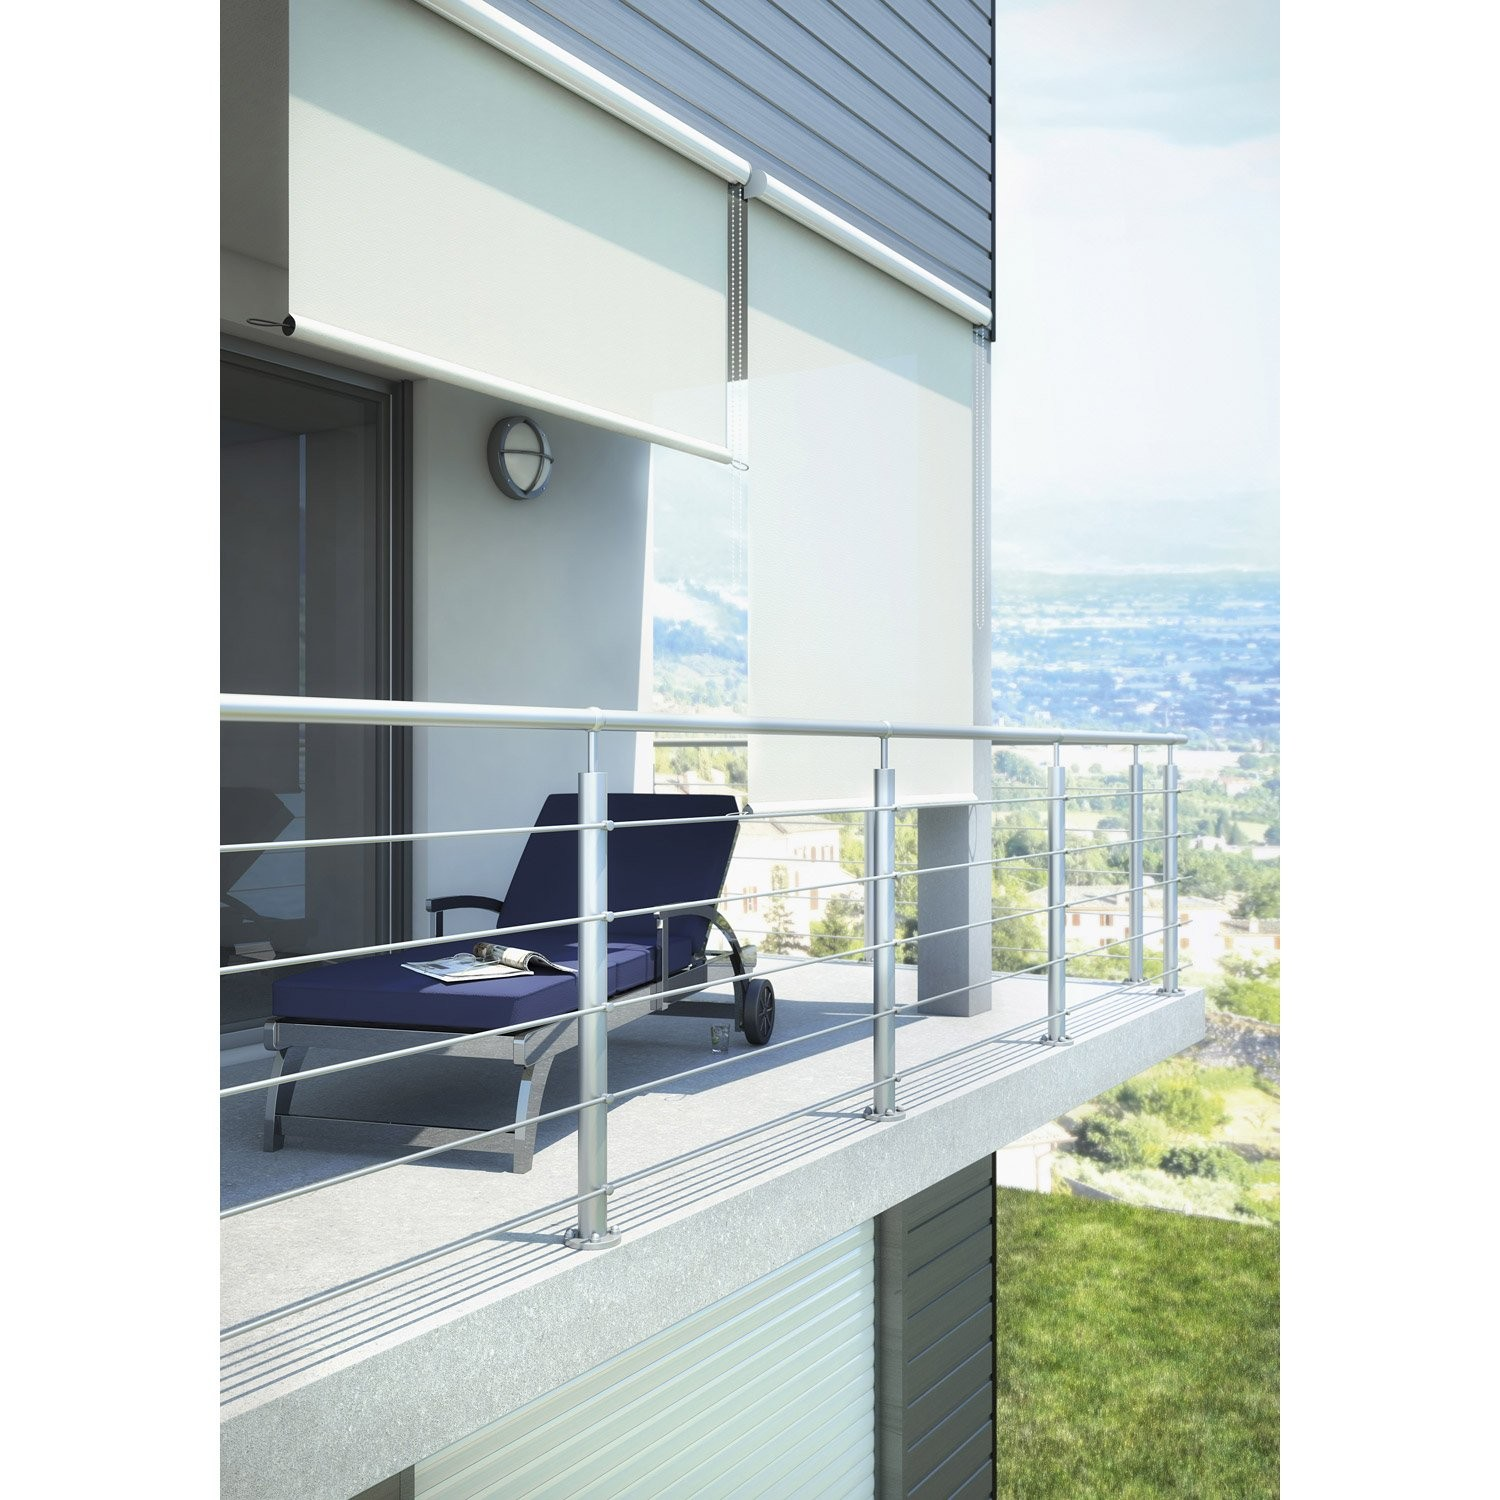 Leroy Merlin Balcon Stores Exterieurs Leroy Merlin Davidreed Co